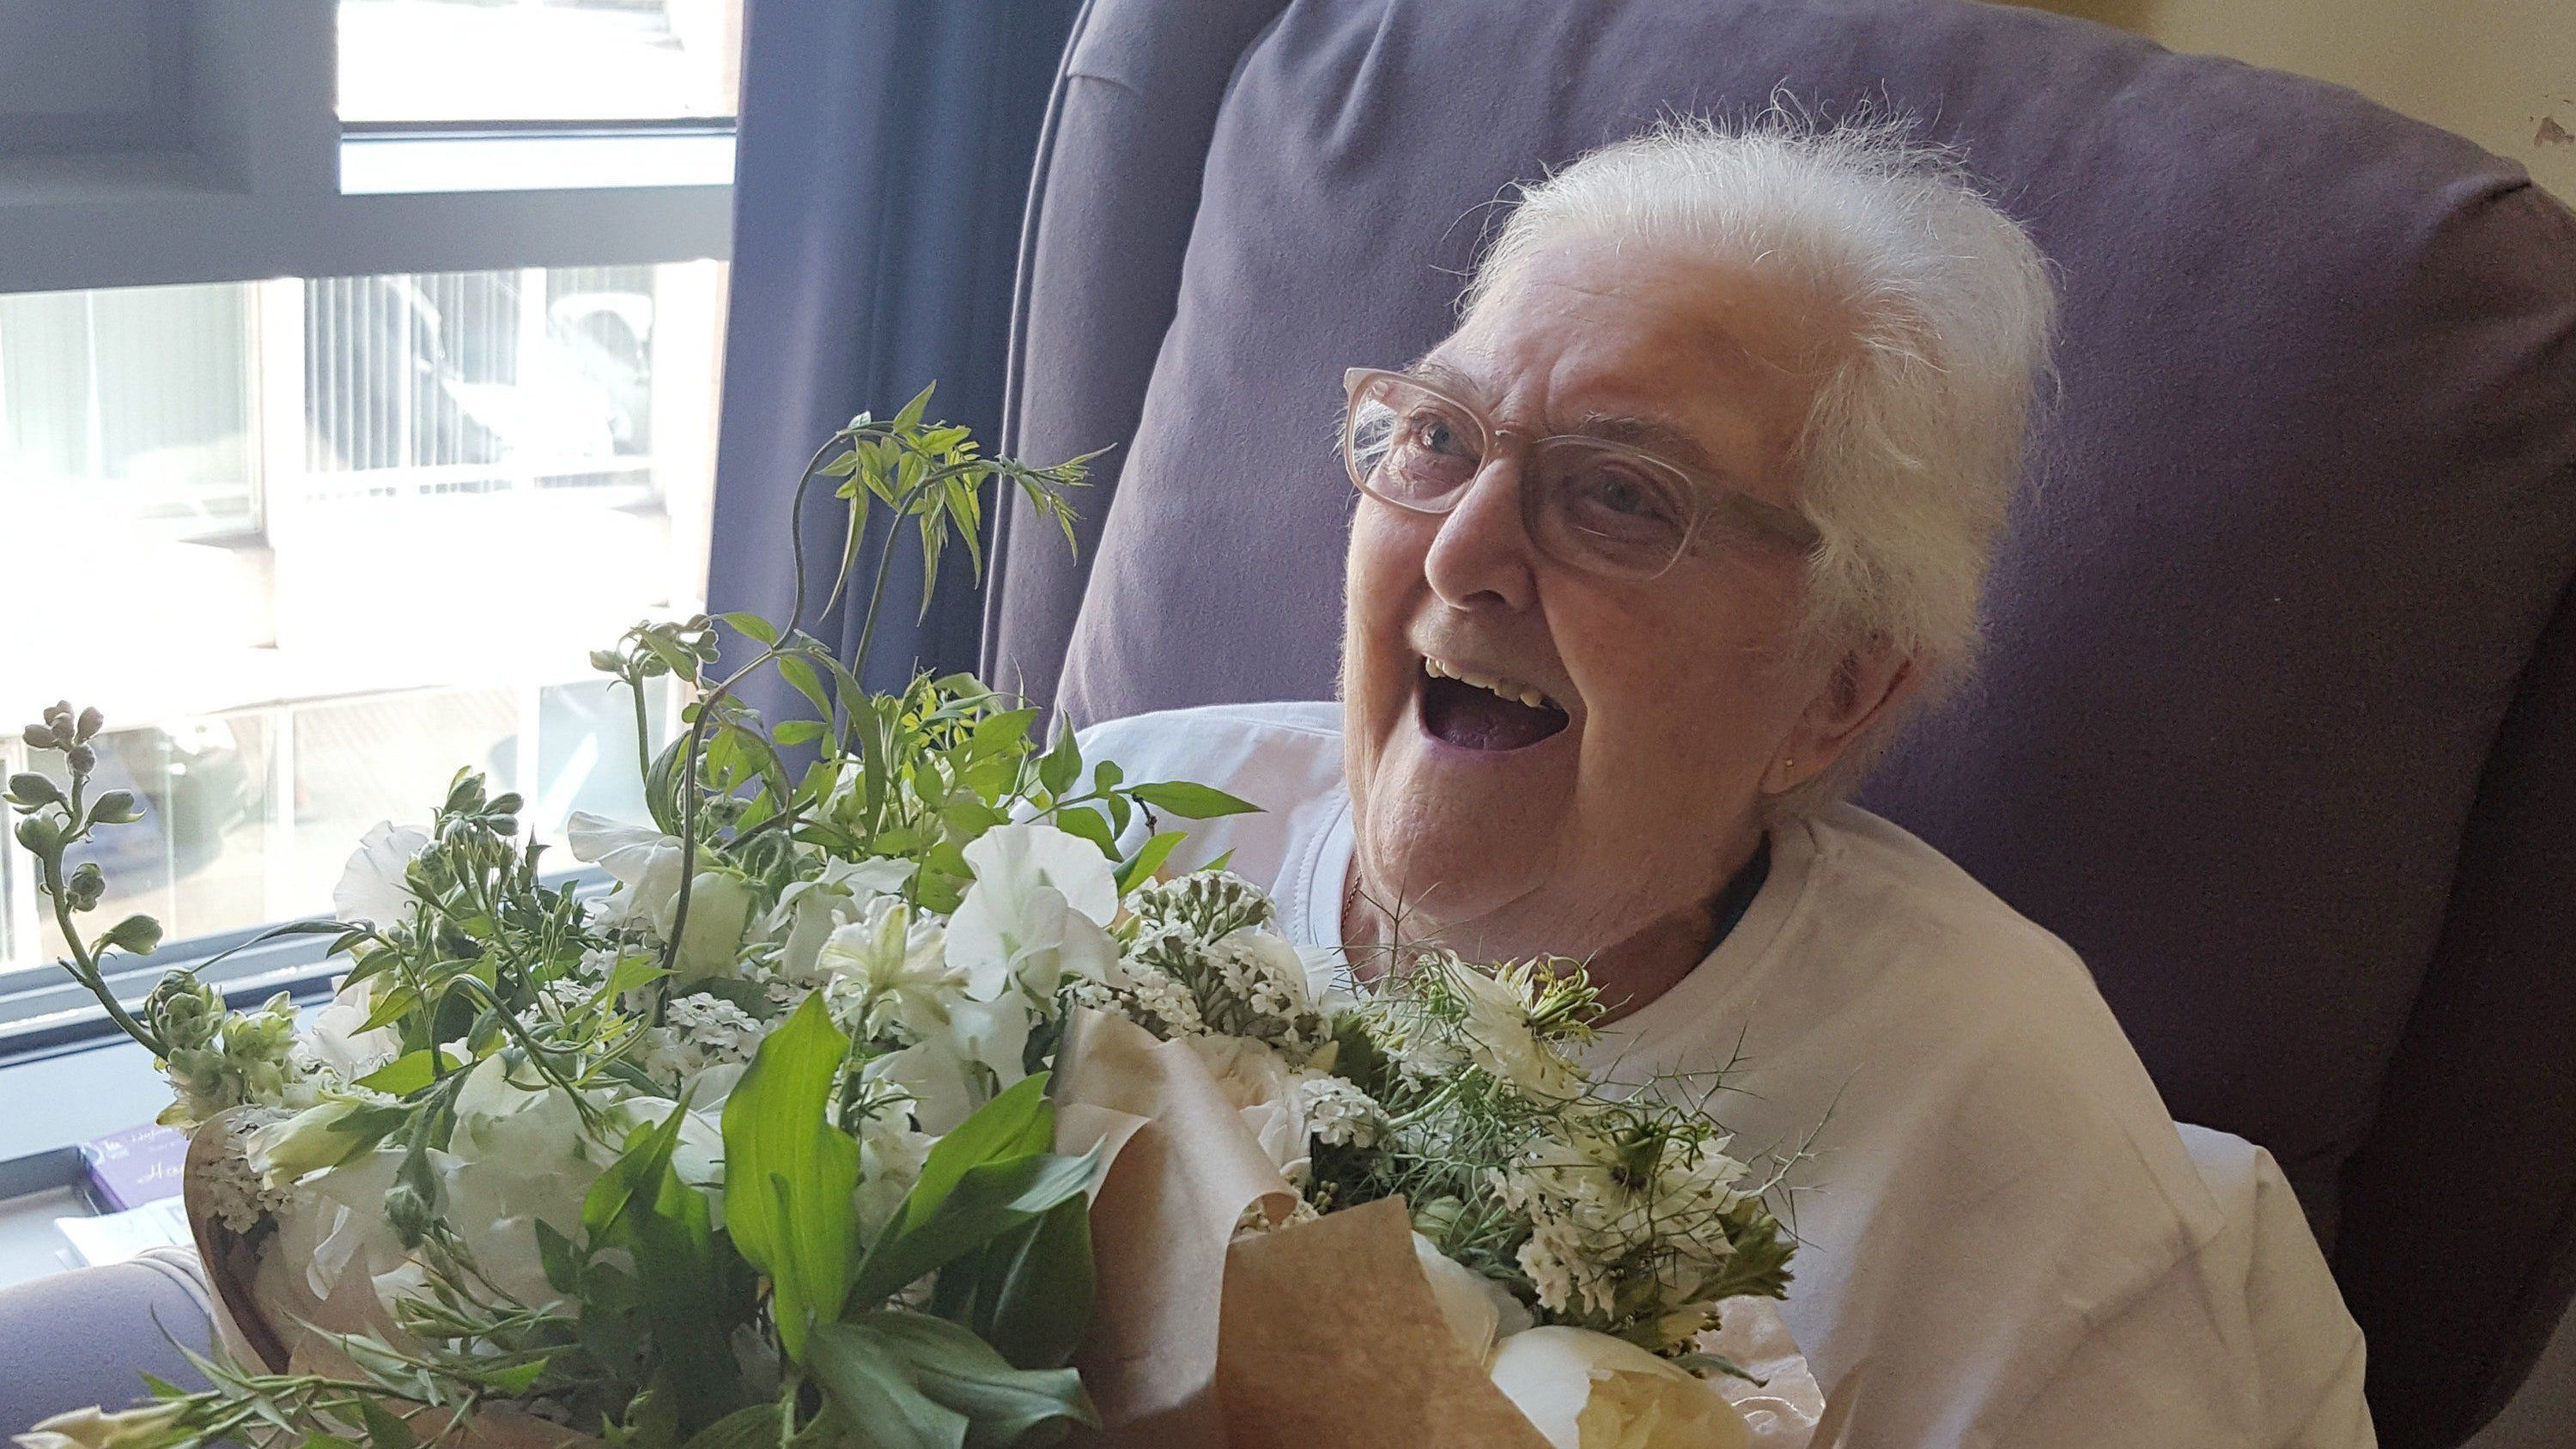 Royal Wedding flowers donated to hospice in London